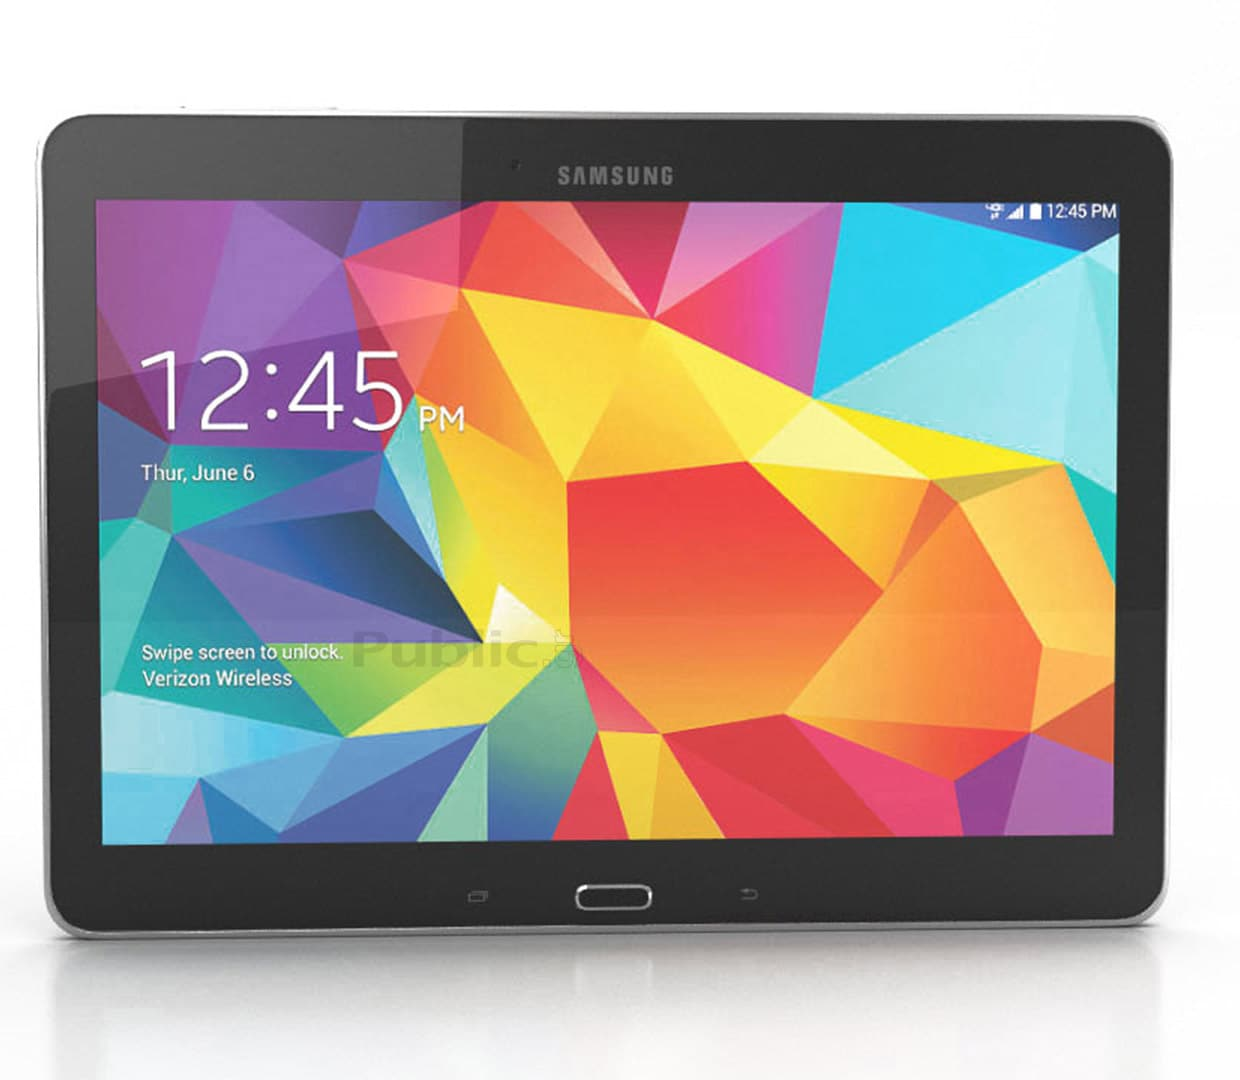 samsung galaxy tab 4 lte sm t535 tablet 10 1 4g 16gb. Black Bedroom Furniture Sets. Home Design Ideas